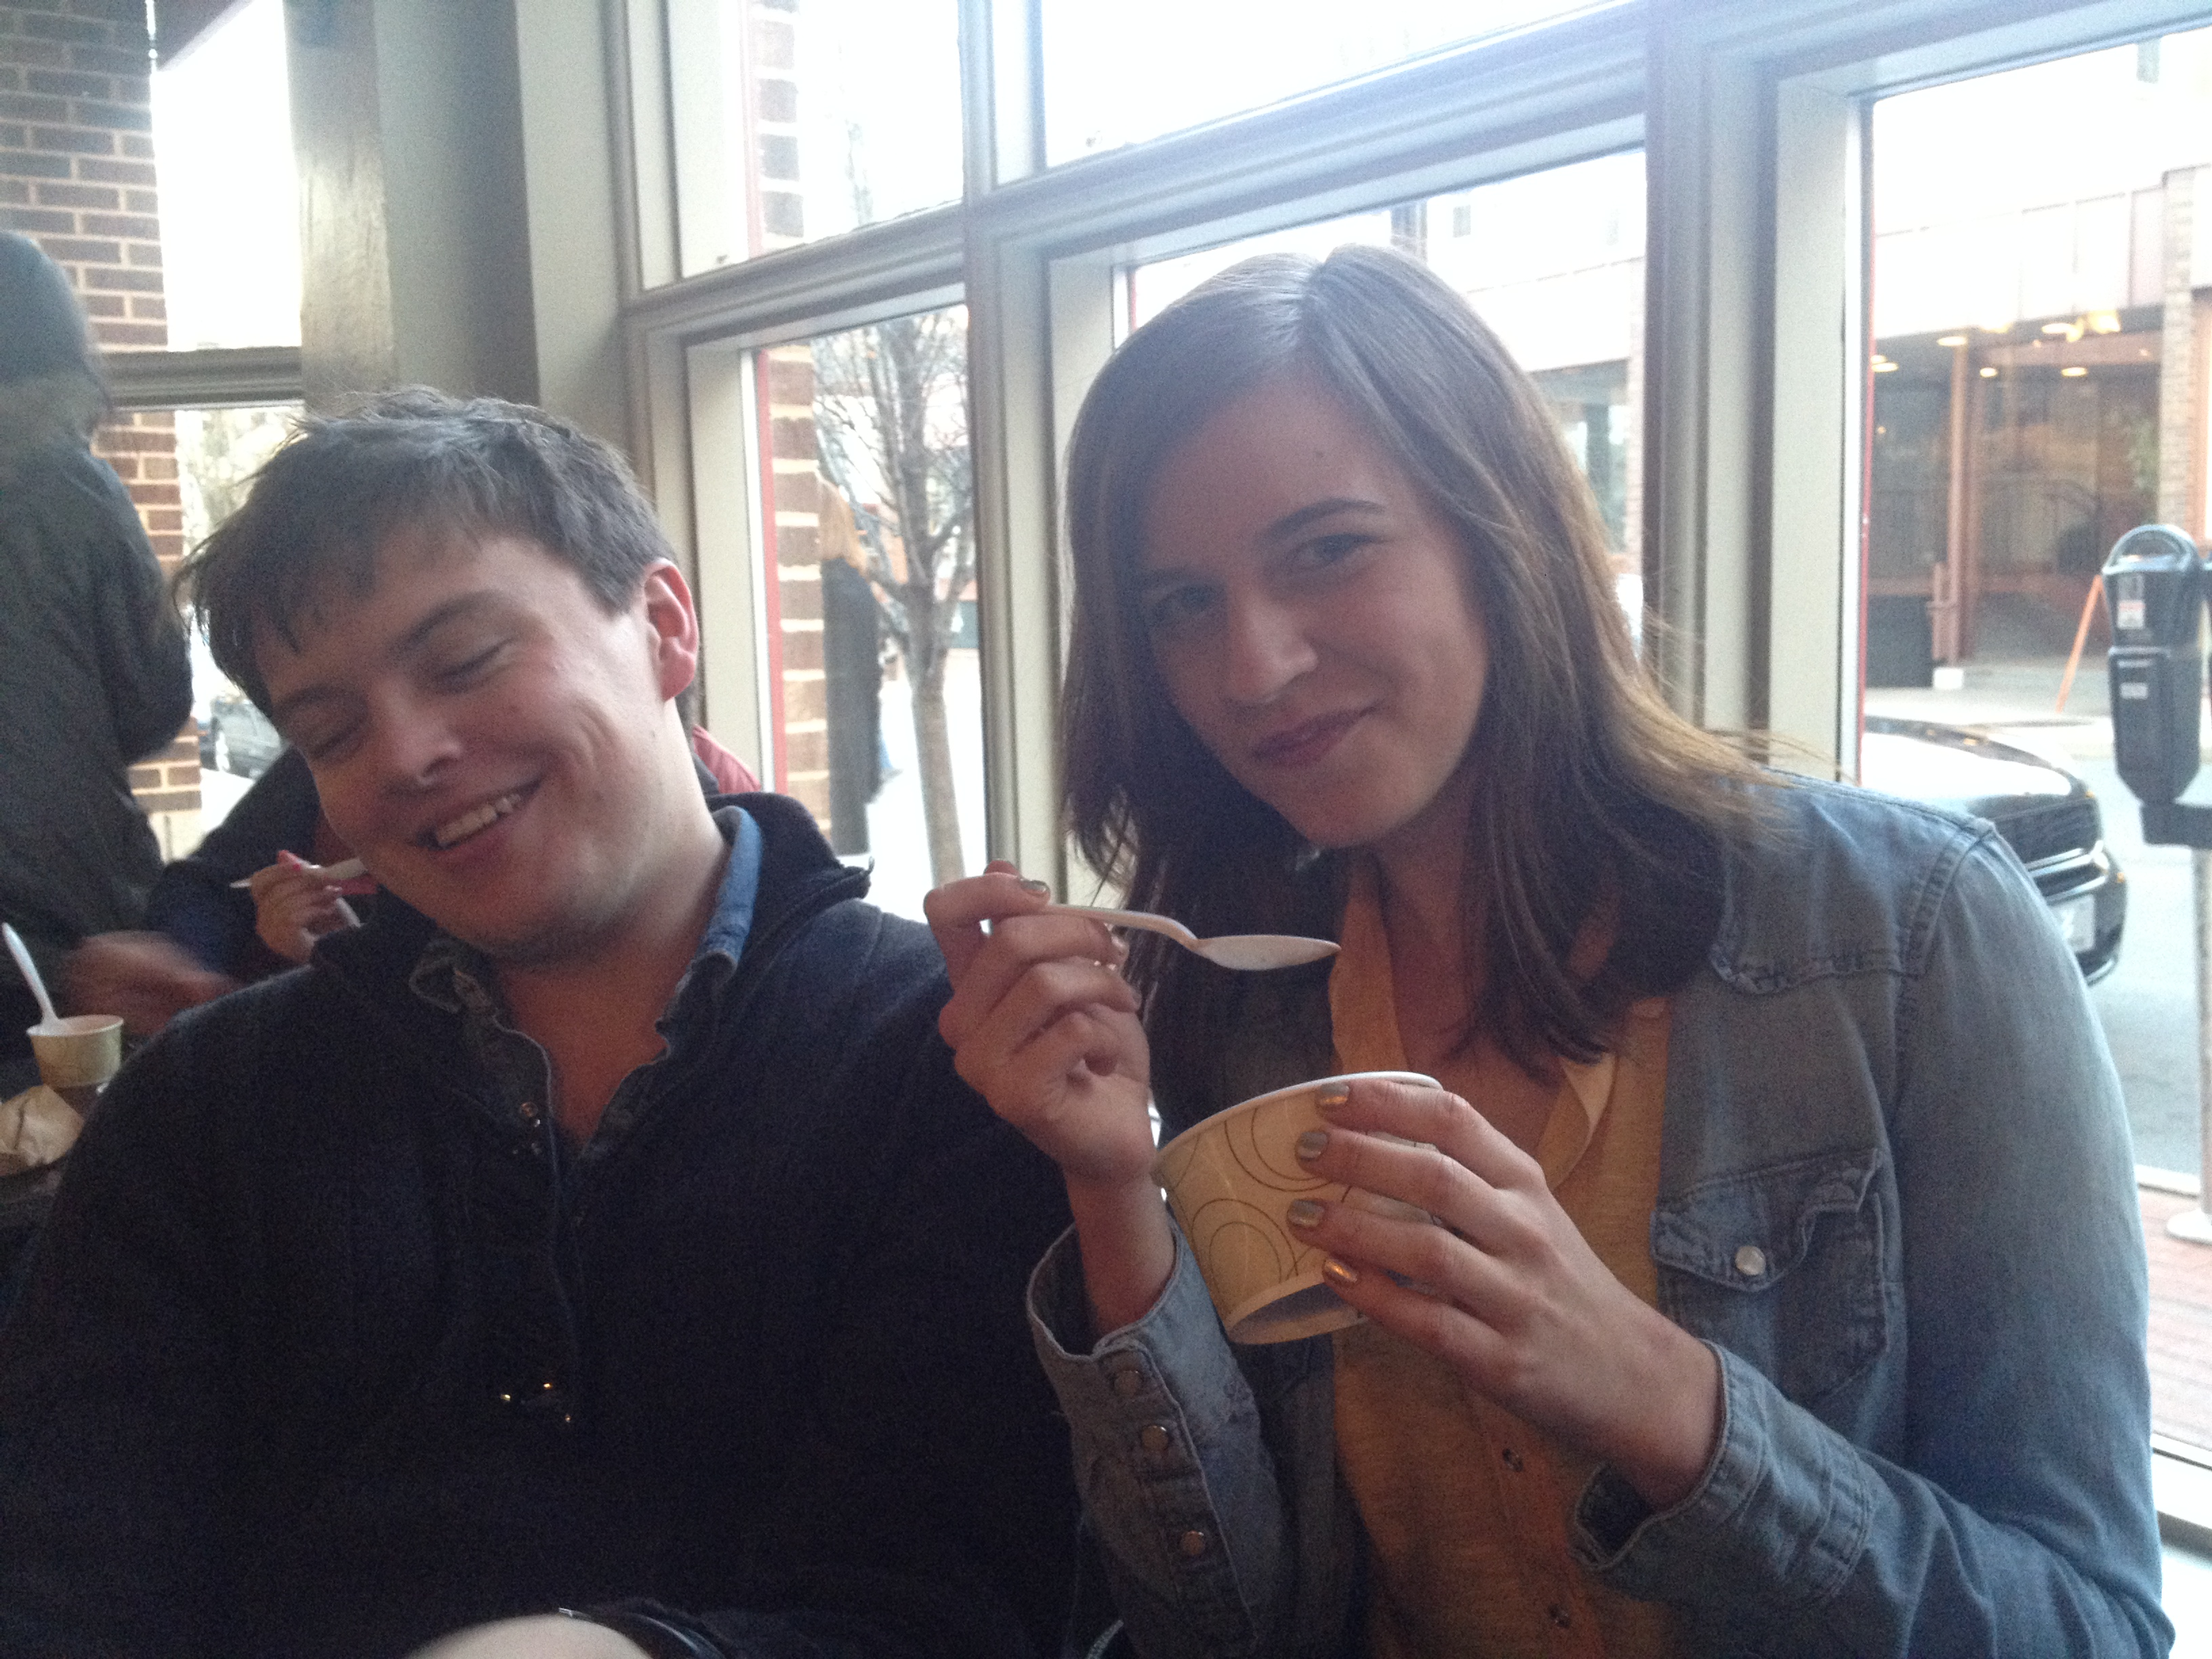 My friend Rachel attractively eating Halo Pub, and her boyfriend James, looking sort of out of it.